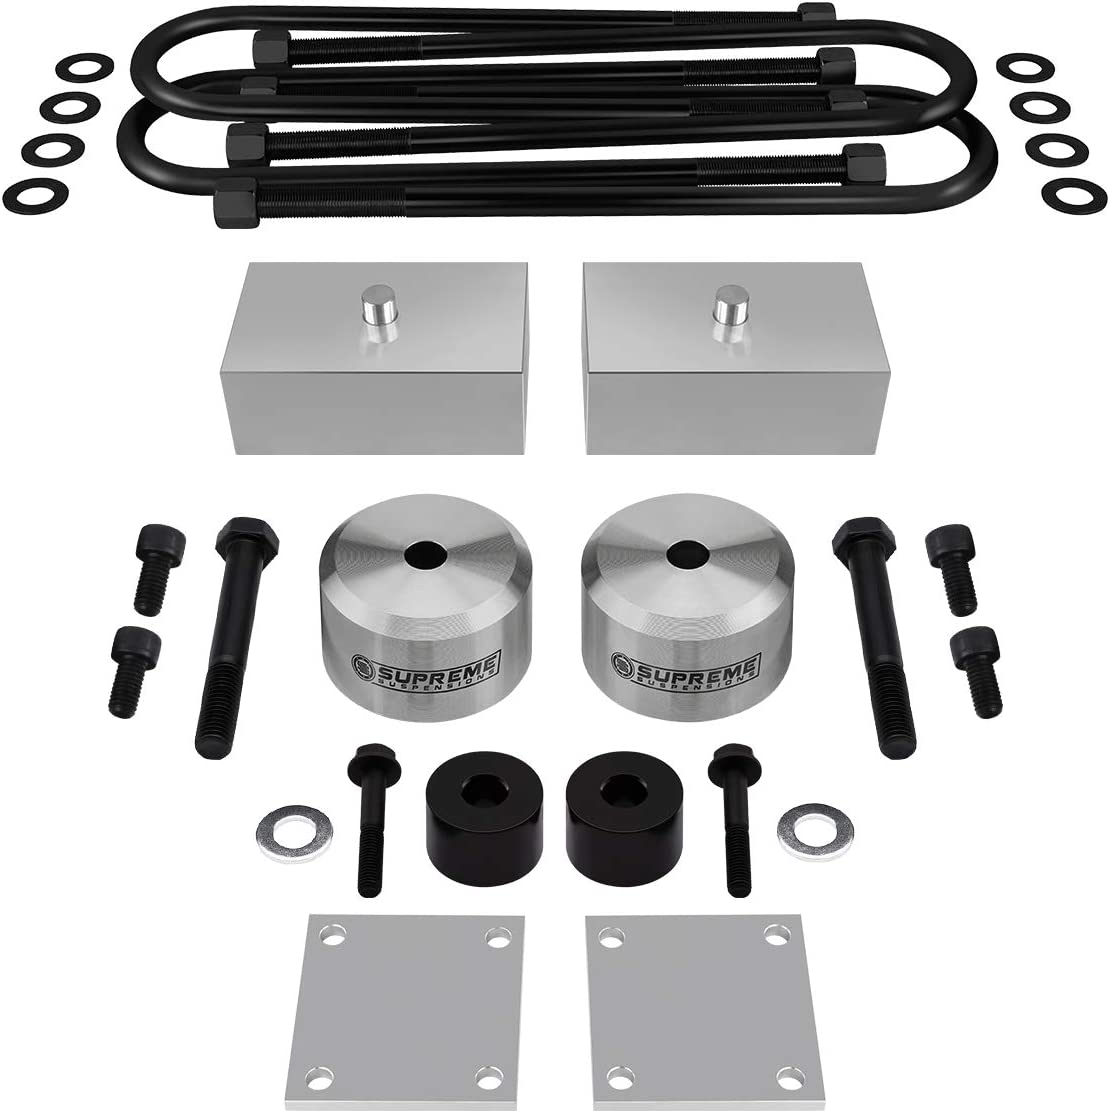 Full Lift Kit for 2005-2016 Ford F250 F350 Super Duty U-Bolts Bump Stop Spacers Brake Line Brackets 2 Rear Lift Blocks 2 Front Lift Spring Spacers 4WD Silver Supreme Suspensions